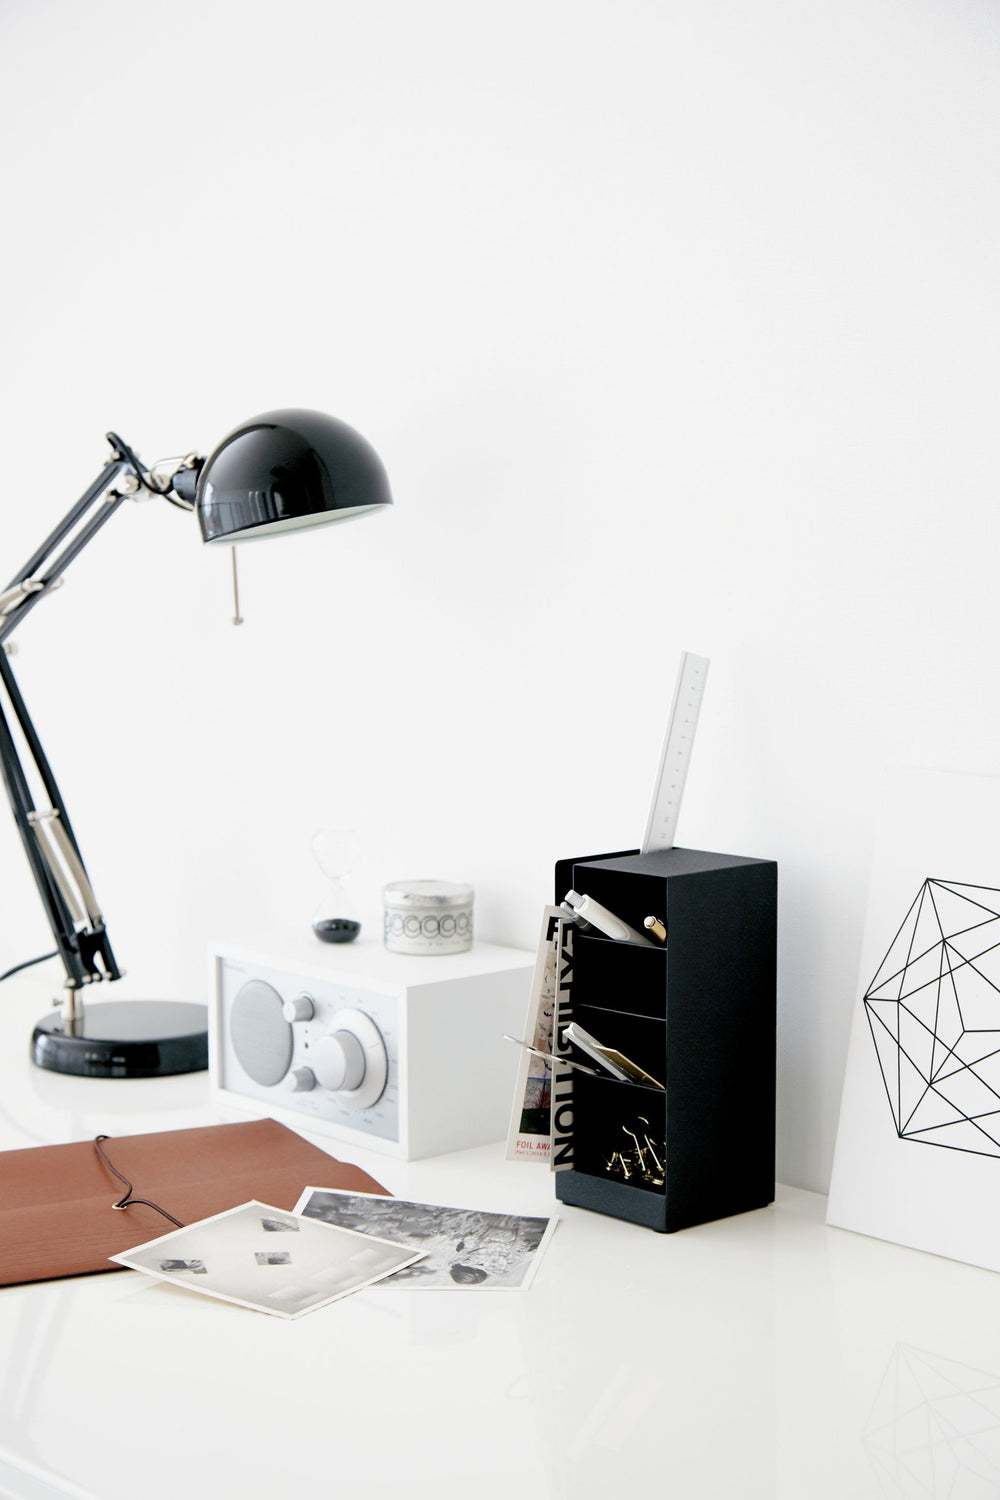 Yamazaki's Black 4 Tiered Desk Organizer positioned on an artfully cluttered white desk